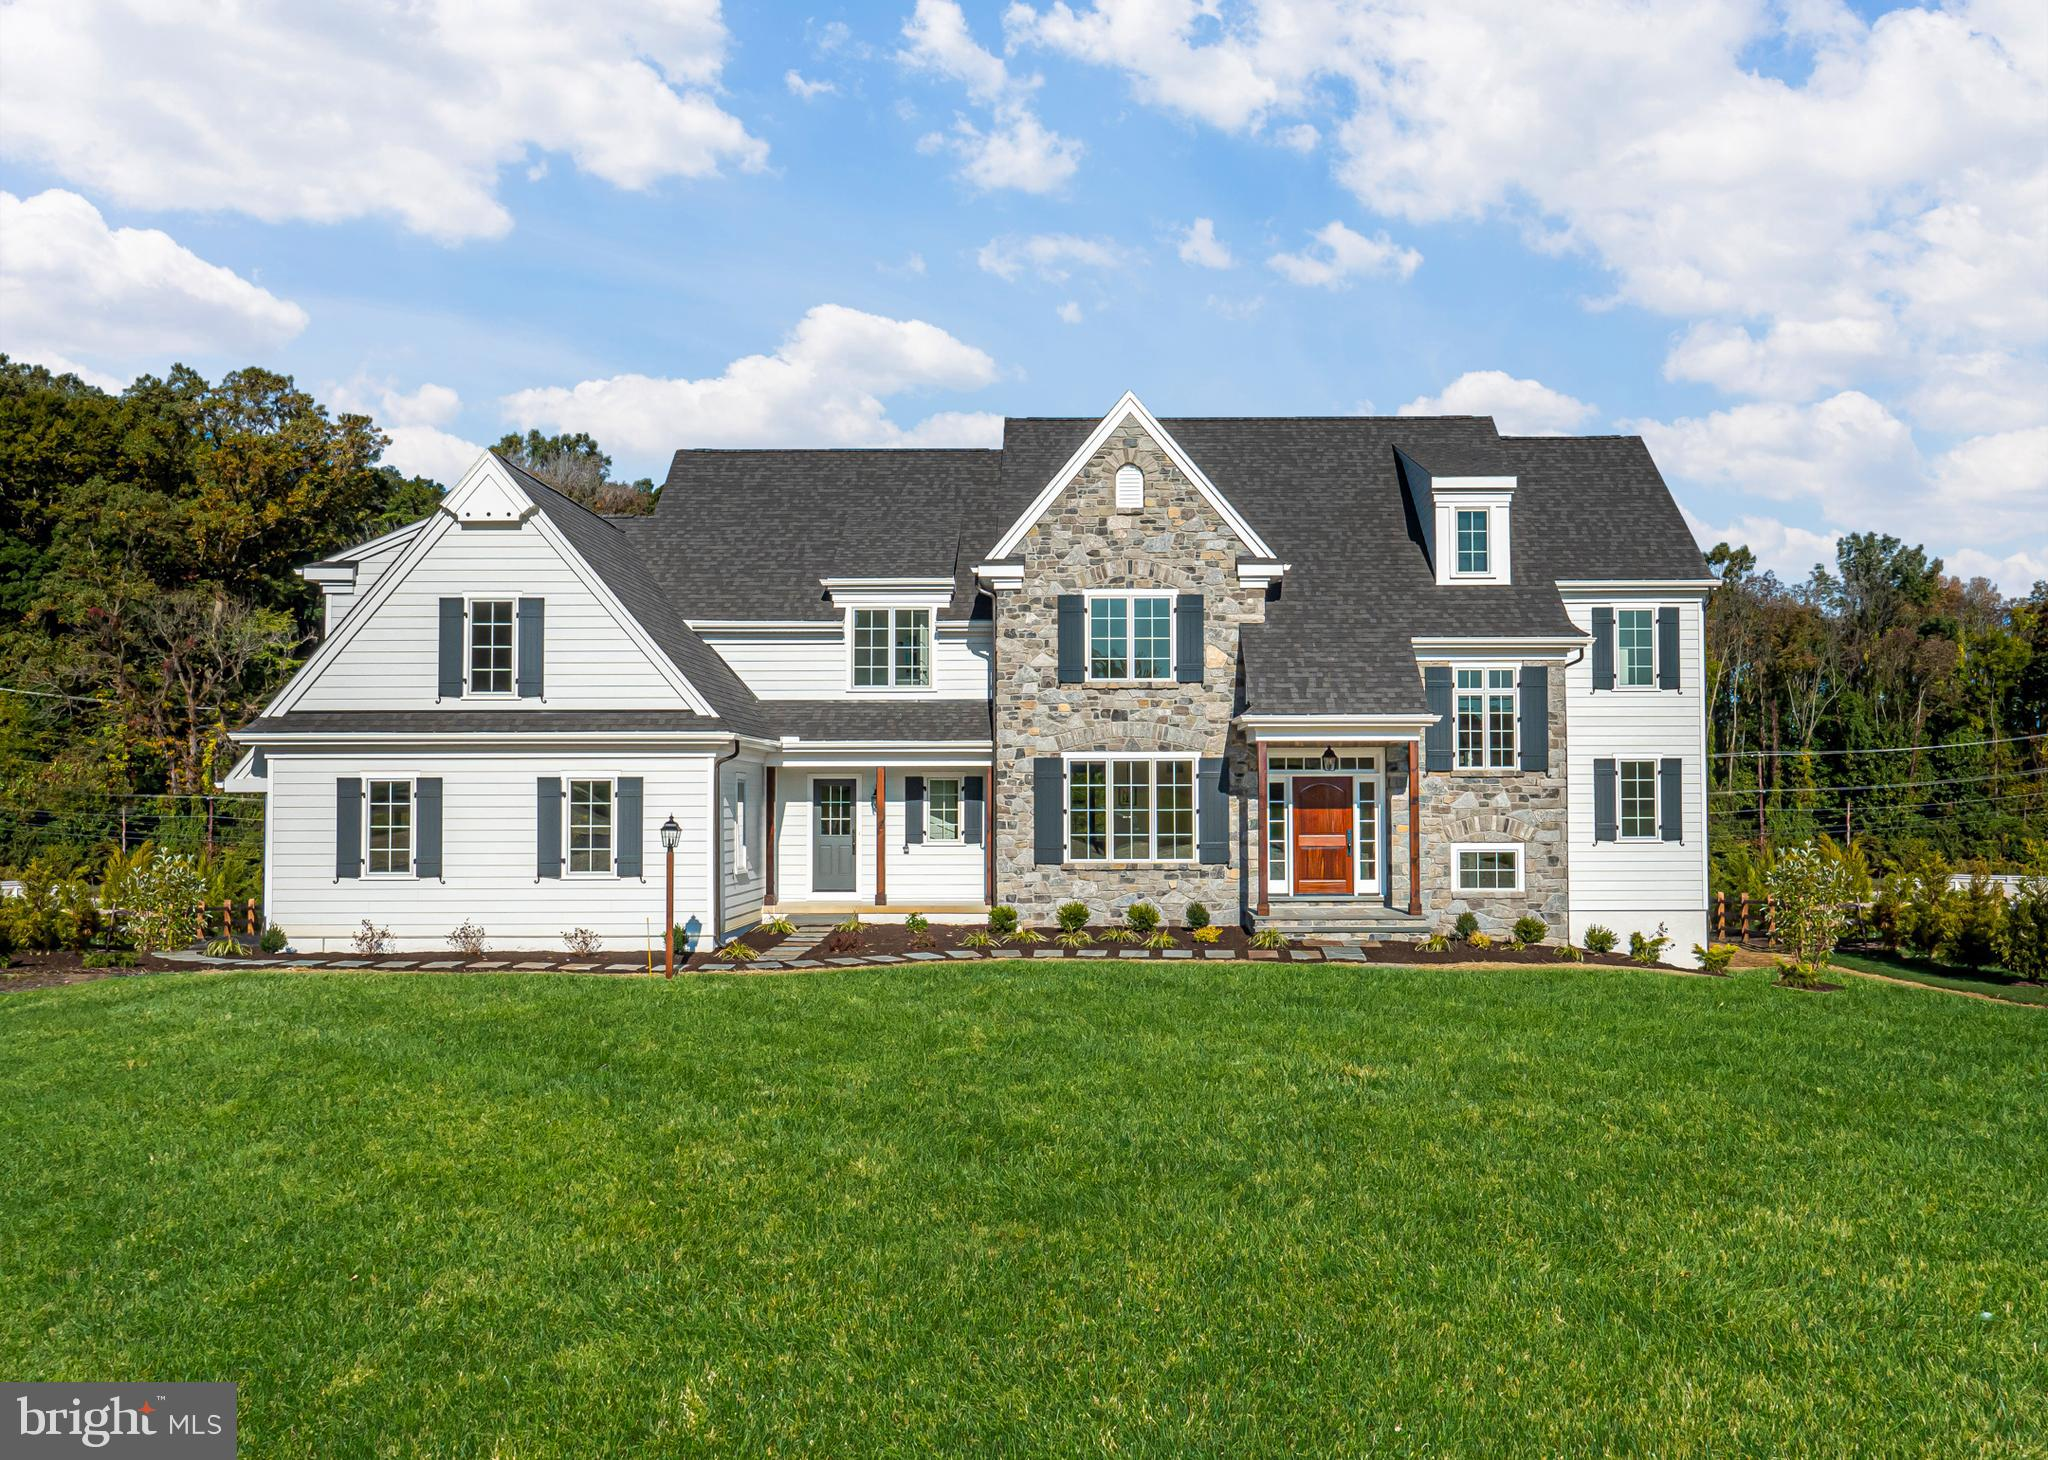 Open House on Sunday, Oct. 25th will be held at: 125 Ashenfelter Rd, Malvern, PA 19355. Last Chance to Live in Cedar Run! Our final deposit on Homesite 2 is moving to another Hellings community so now Homesite 2 is slightly over an acre and now available for your custom build! The home you have been waiting for is finally here! Surrounded by the bucolic Charlestown landscape, Cedar Run offers the perfect combination of privacy and convenience, located just minutes to 202 and the PA Turnpike. Premier architect Mark Stanish has personally designed  floor plans. Each home to be finely crafted by Hellings Builders, known for their quality construction and attention to detail with a reputation for honesty, integrity and high standards. This breathtaking Newtown Model offers a bright, open floor plan, spacious great room, first floor study, abundance of windows, luxurious master suite, site finished hardwood flooring, high efficiency hvac, and so much more! From the Hardiplank fiber cement siding, Pella Proline wood windows and Schlage interior door hardware, to the Aker soaking tub and Luxart faucets, no expense is spared and no corners are cut! This stunning home offers understated luxury throughout. Lot premiums may apply. Please note that photos are of a similar Newtown model that may include additional upgraded features and finishes.